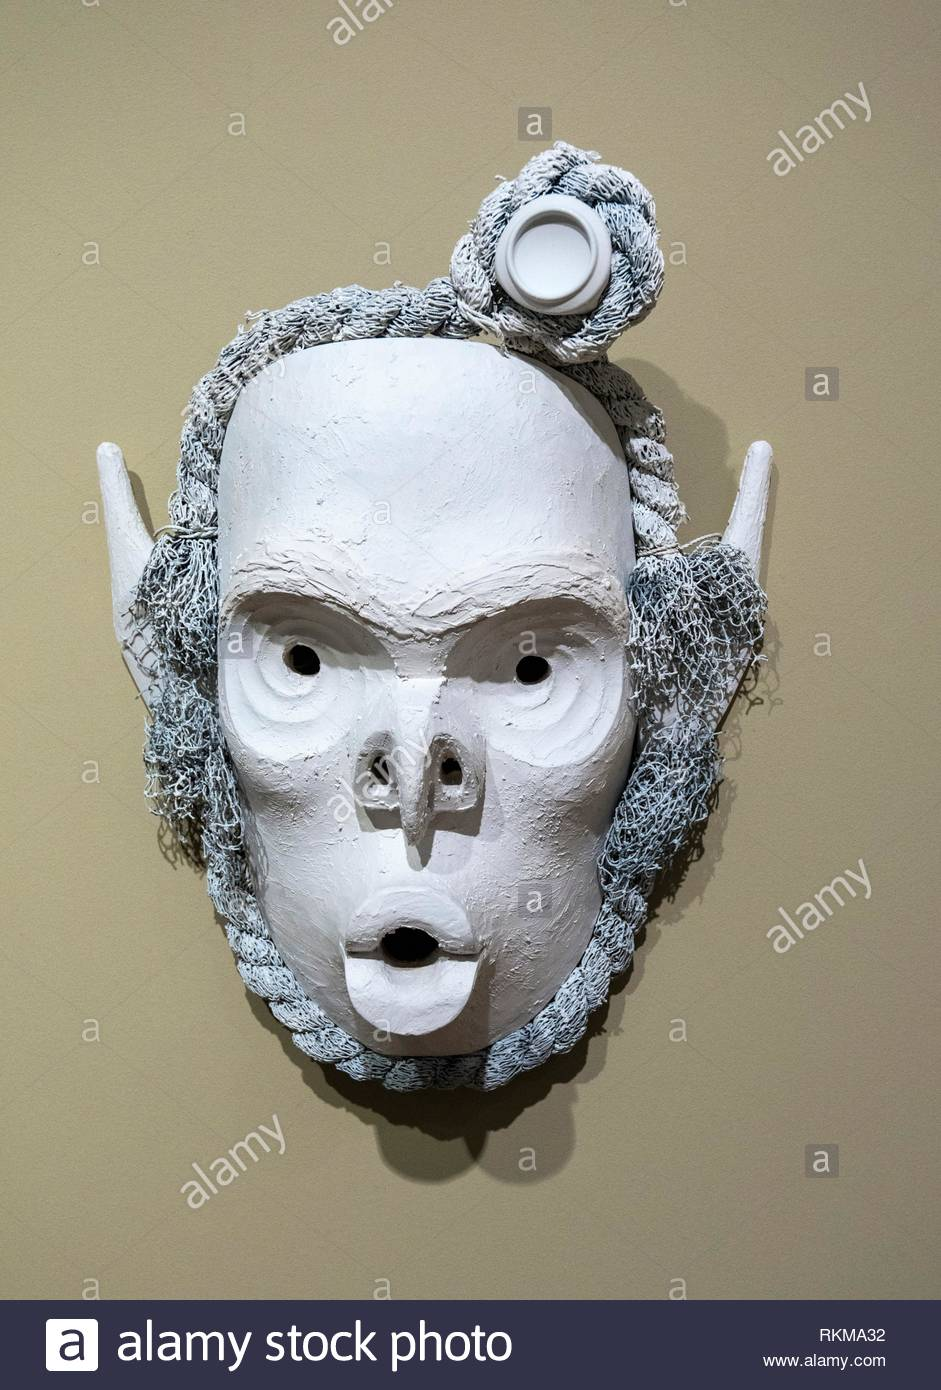 Pookmis Mask, by artist Cole Speck, West coast First Nations art at the Audain Art Museum in Whistler, BC, Canada. - Stock Image